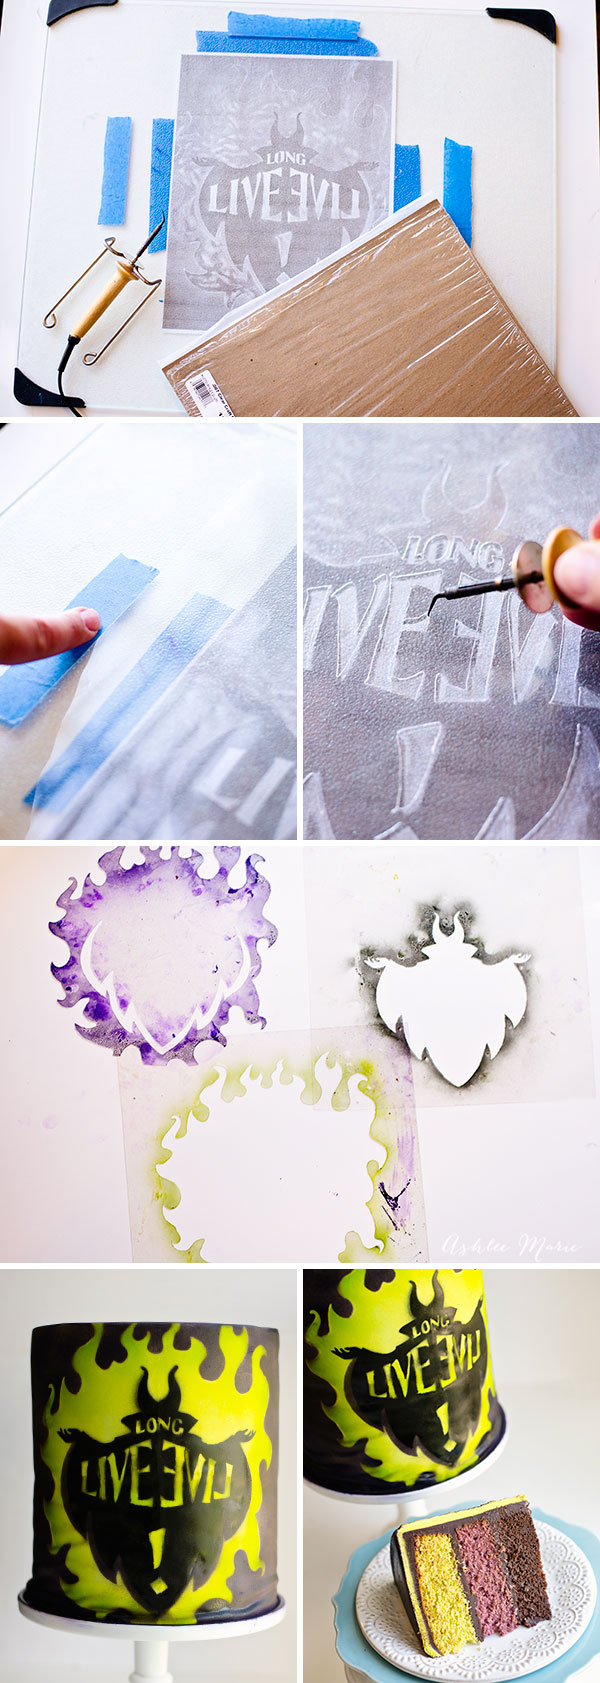 it's easy to make your own stencil that you can use for crafts and cake decorating